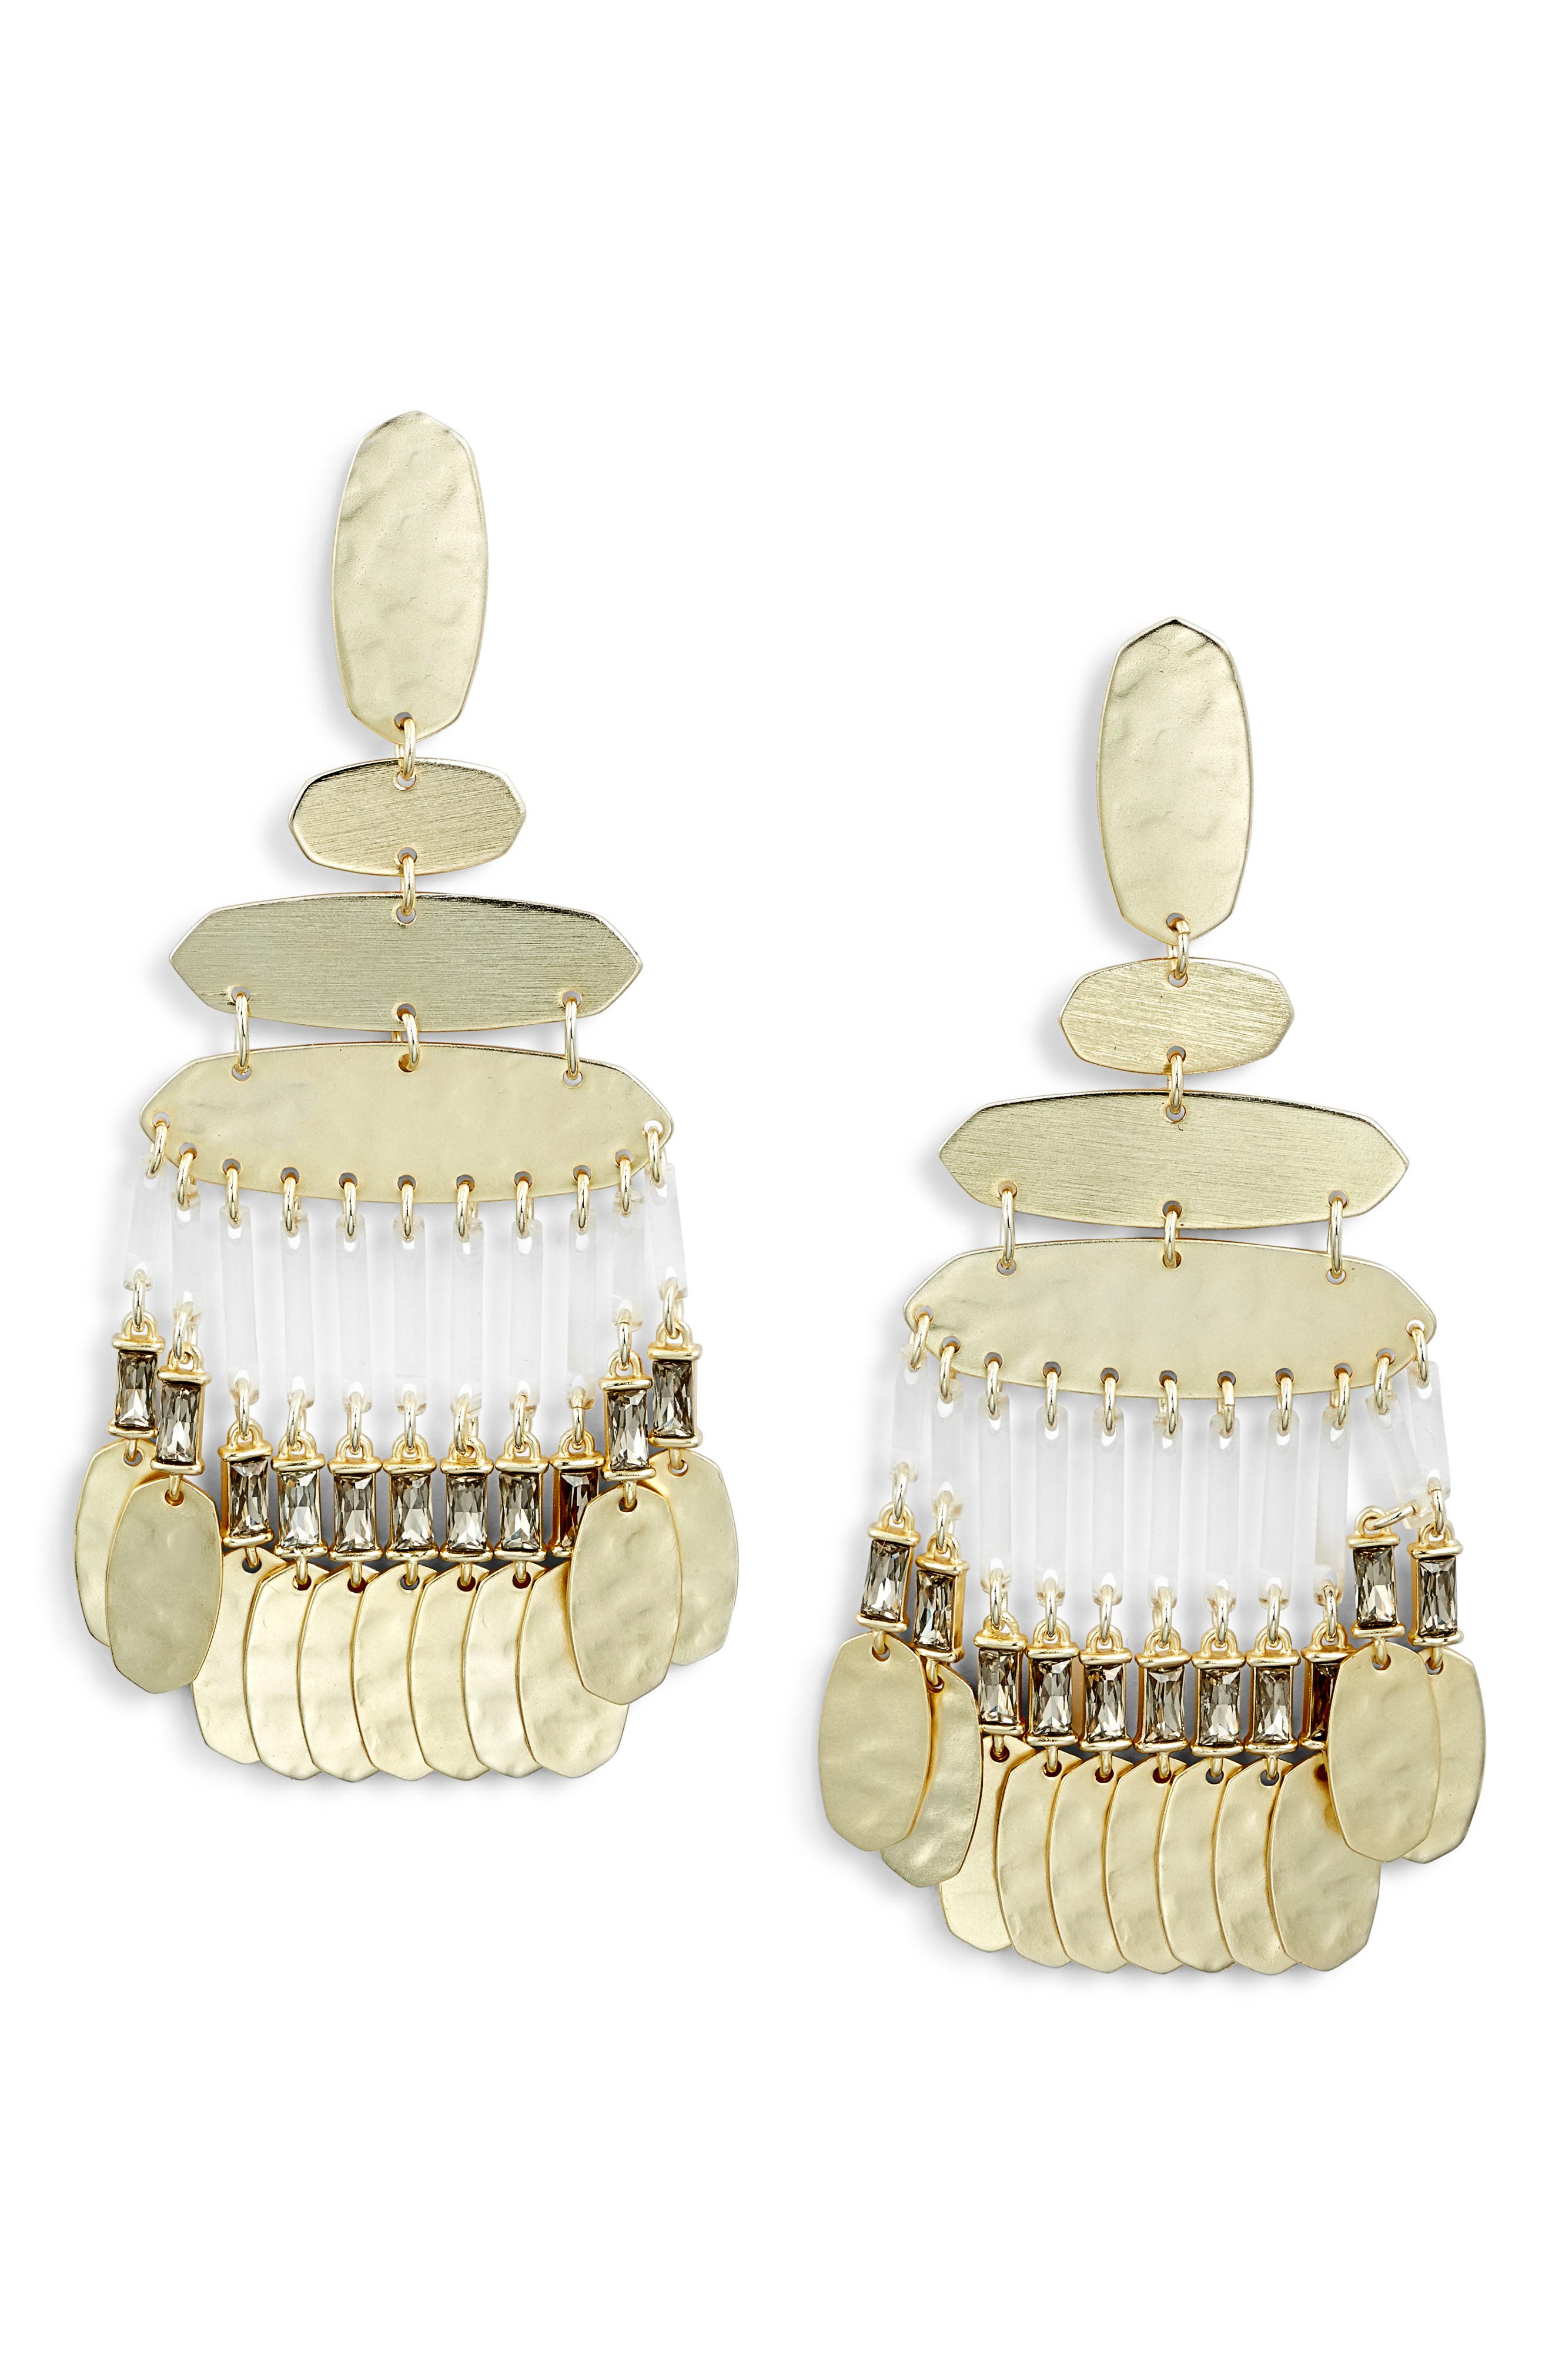 Nicola Large Chandelier Earrings,                             Main thumbnail 1, color,                             SMOKY CRYSTAL/ GOLD